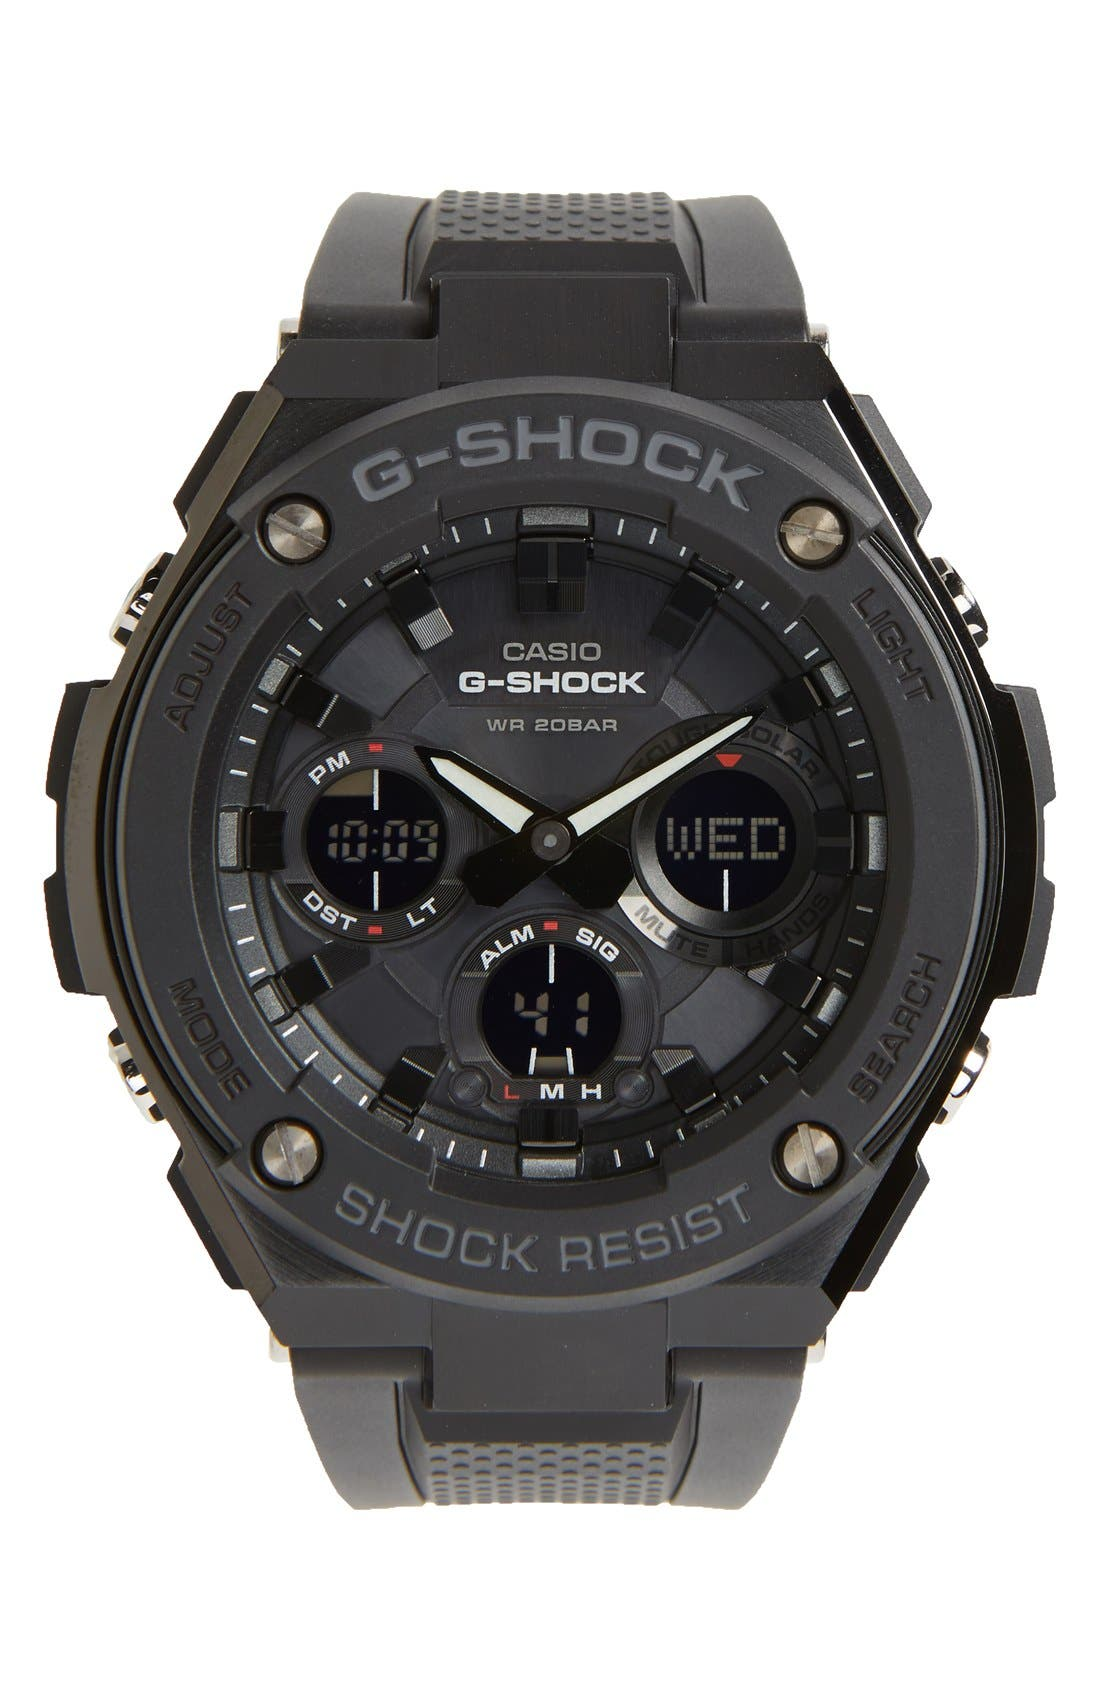 G-SHOCK BABY-G G-Shock Ana-Digi Solar Watch, 46mm